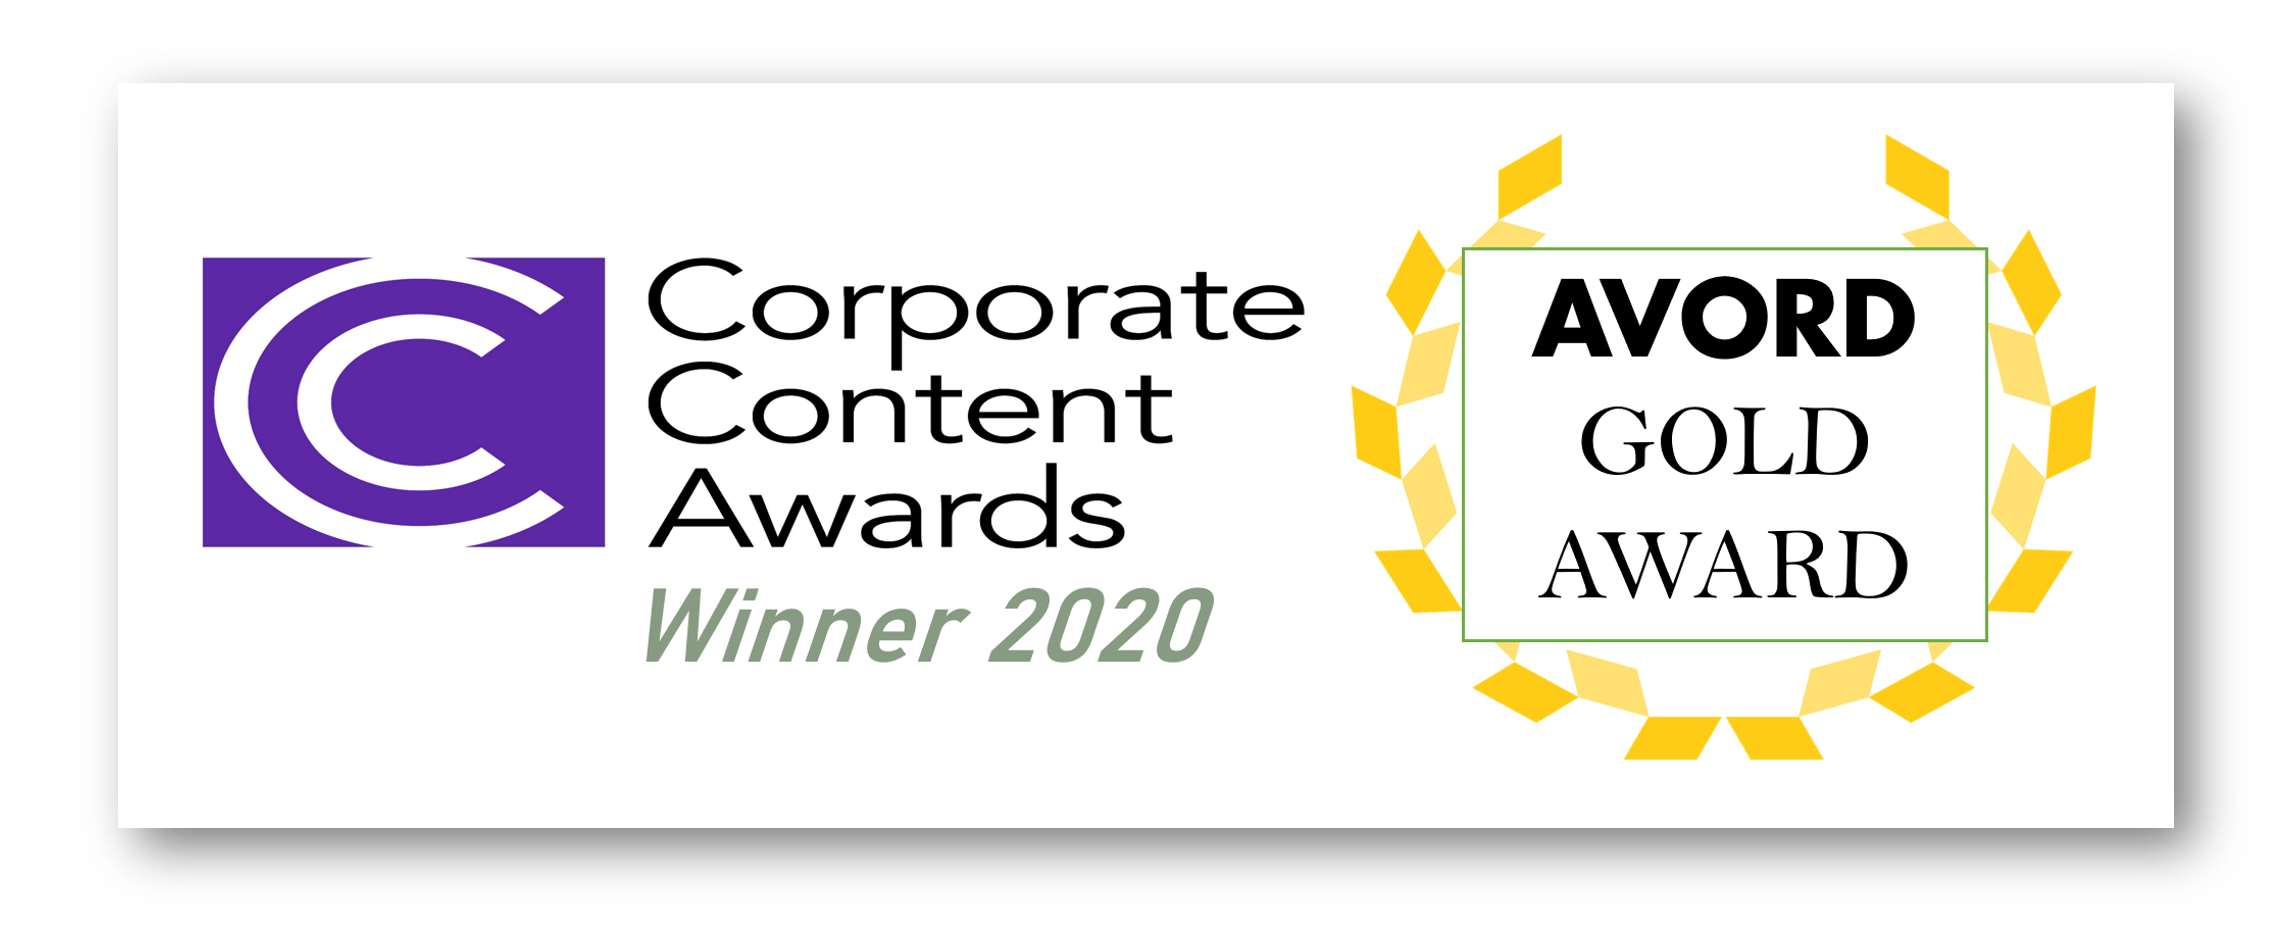 AVORD Wins Corporate Content Awards